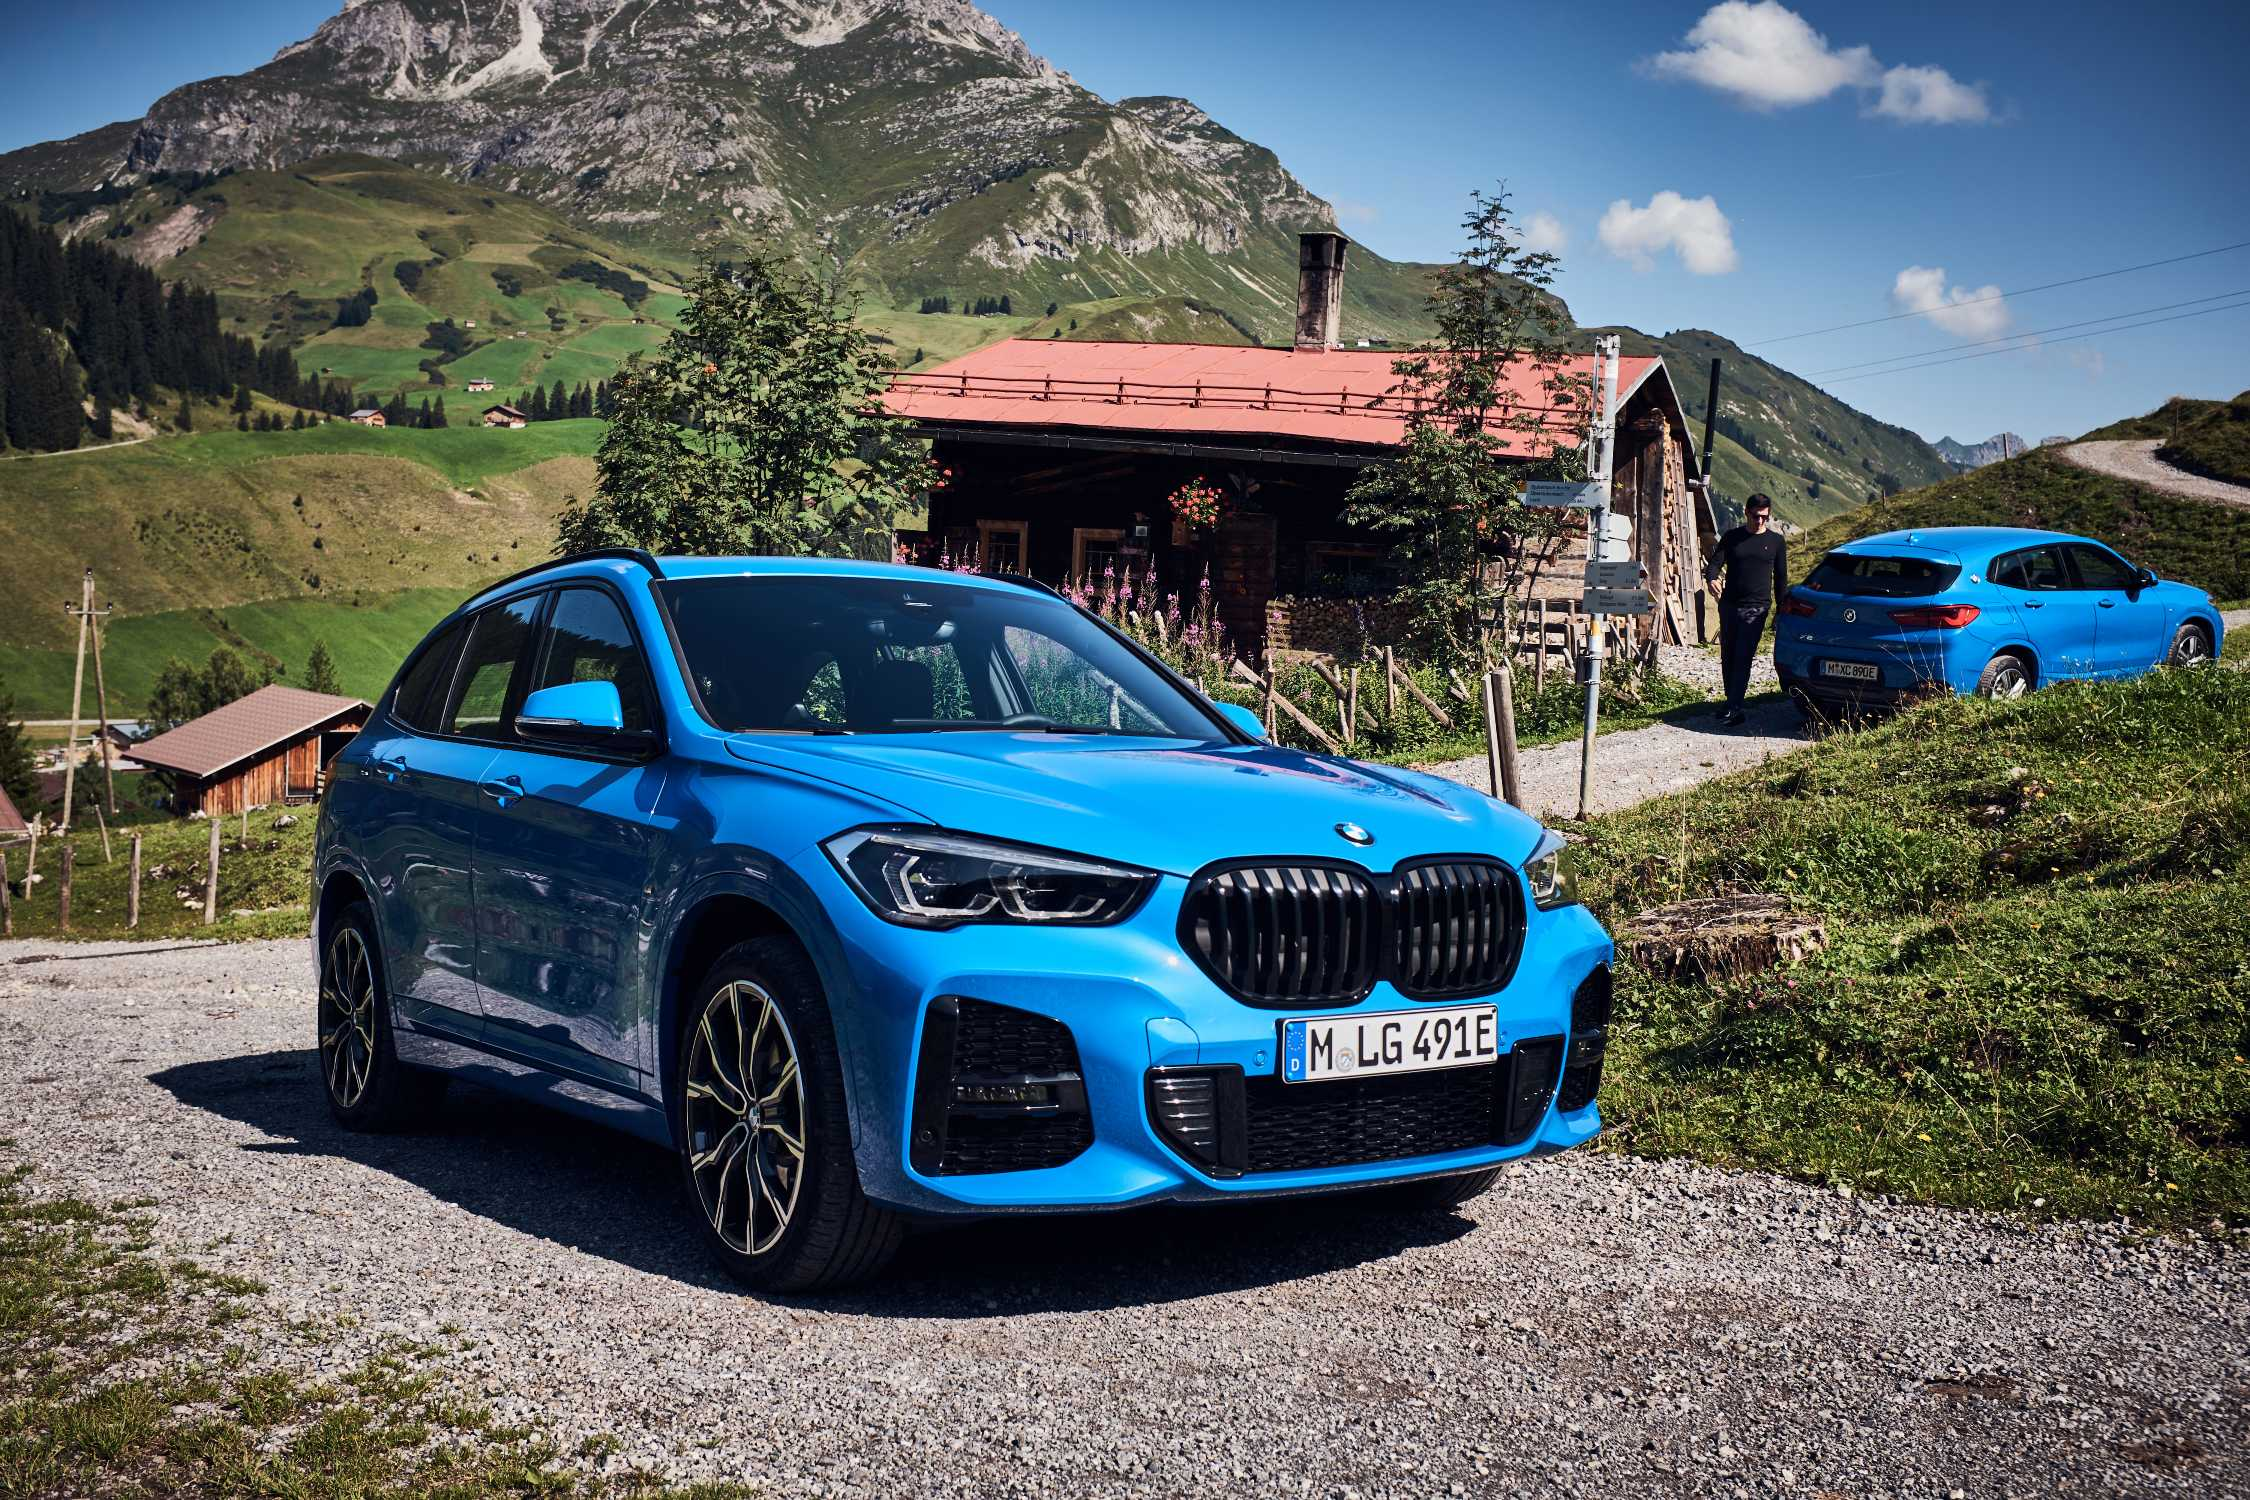 Compact Bmw X Models With Plug In Hybrid Drive The New Bmw X1 Xdrive25e To Be Launched Followed By The Bmw X2 Xdrive25e